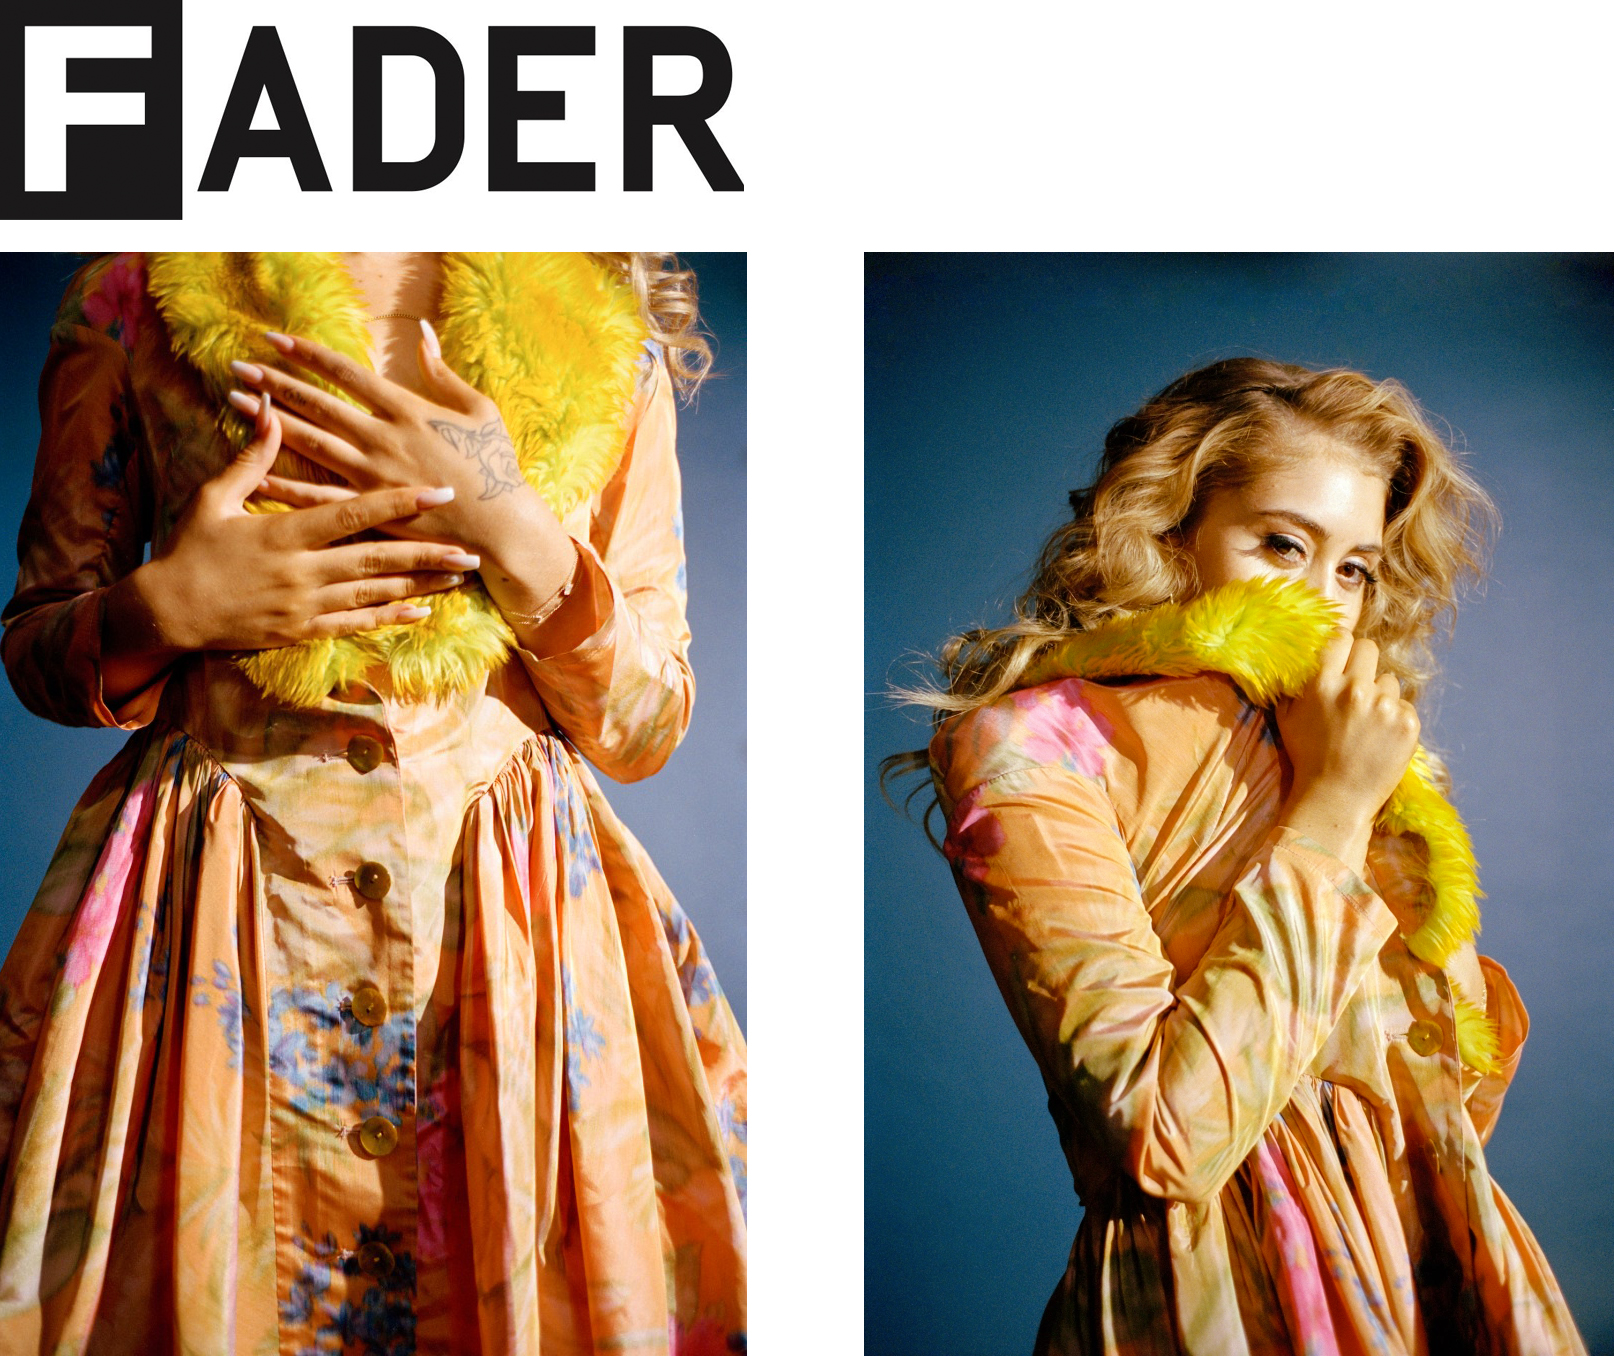 The Fader magazine interview editorial Kali Uchis cover story warp woven floral silk taffeta green yellow faux fur coat dress made-to-measure luxury womenswear made in New York City NYC Brooklyn Bushwick sustainable ethical local production diversity emerging designer new talent rising stars  Fashion by  Mar Peidro   Photographer  Tyler Mitchell